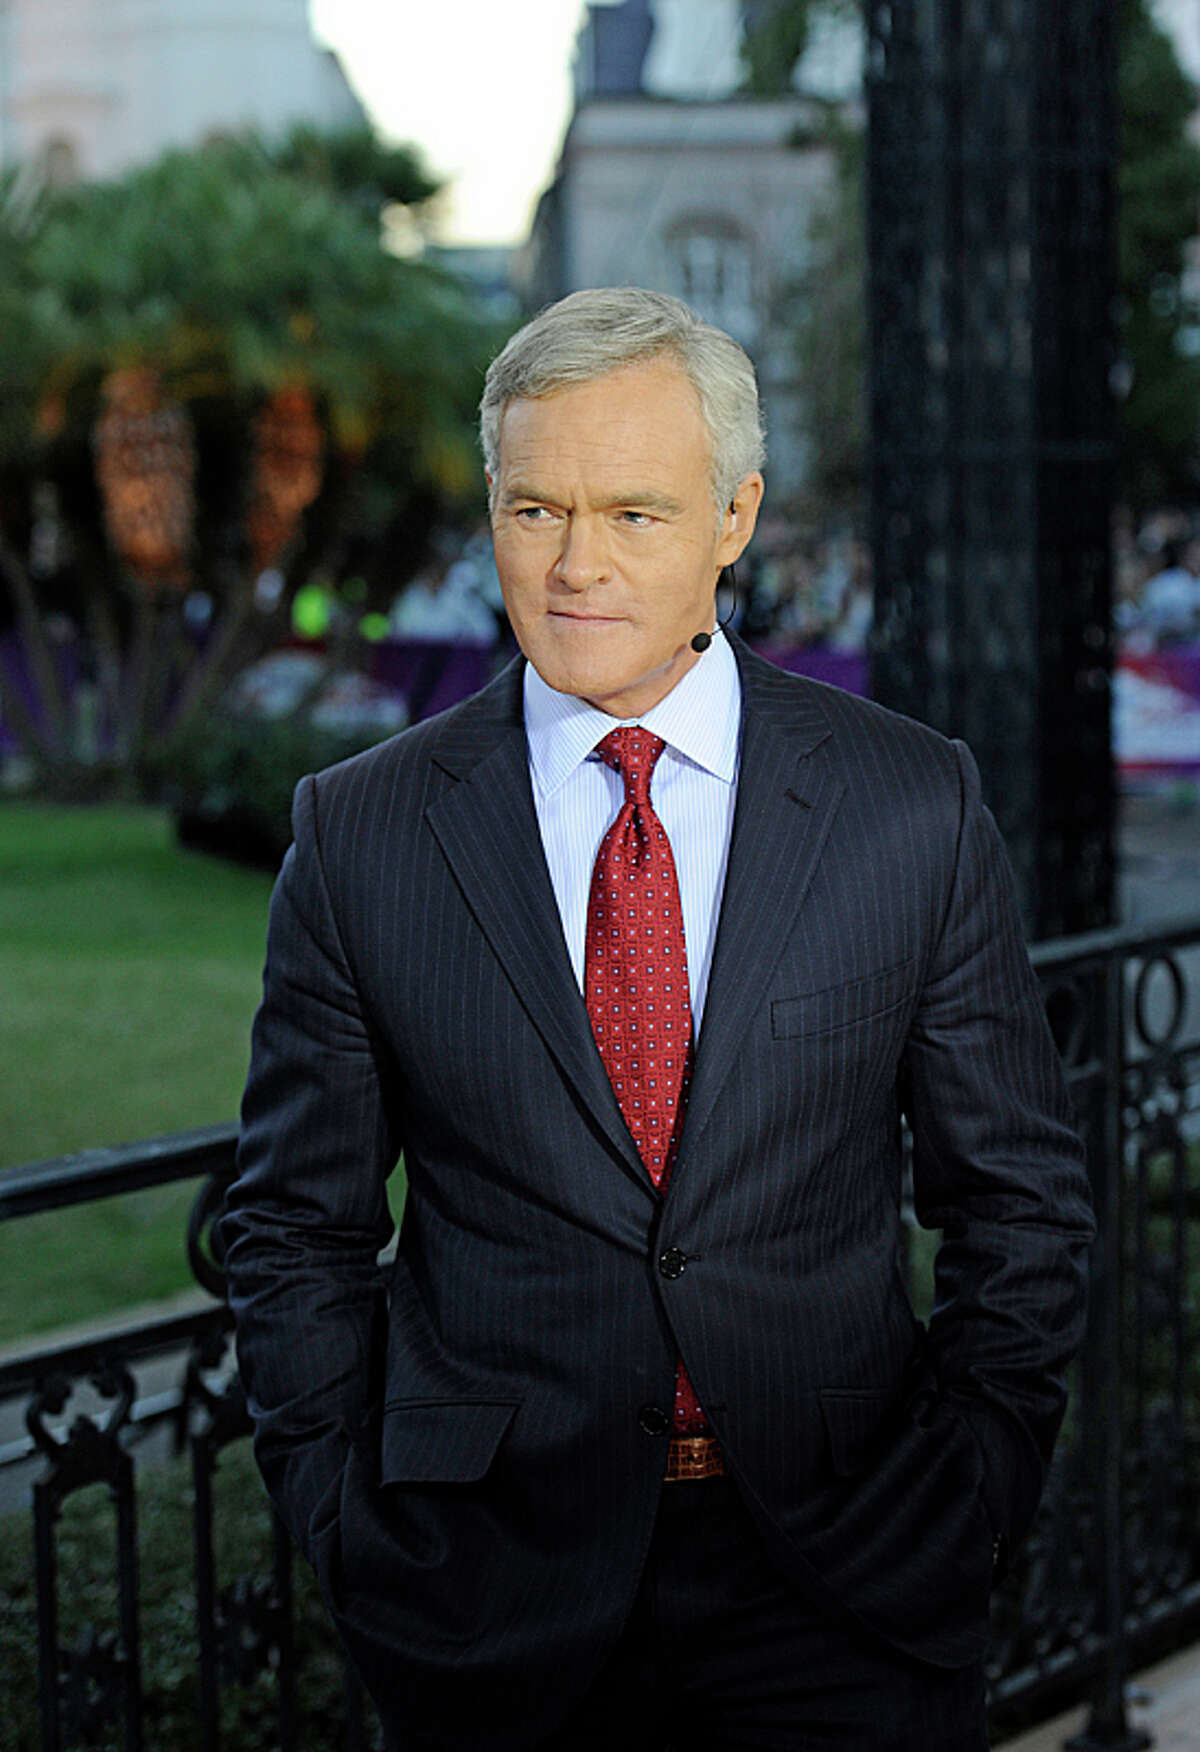 Scott Pelley, who earns $5 million per year with CBS News, is rumored to be on his way out as